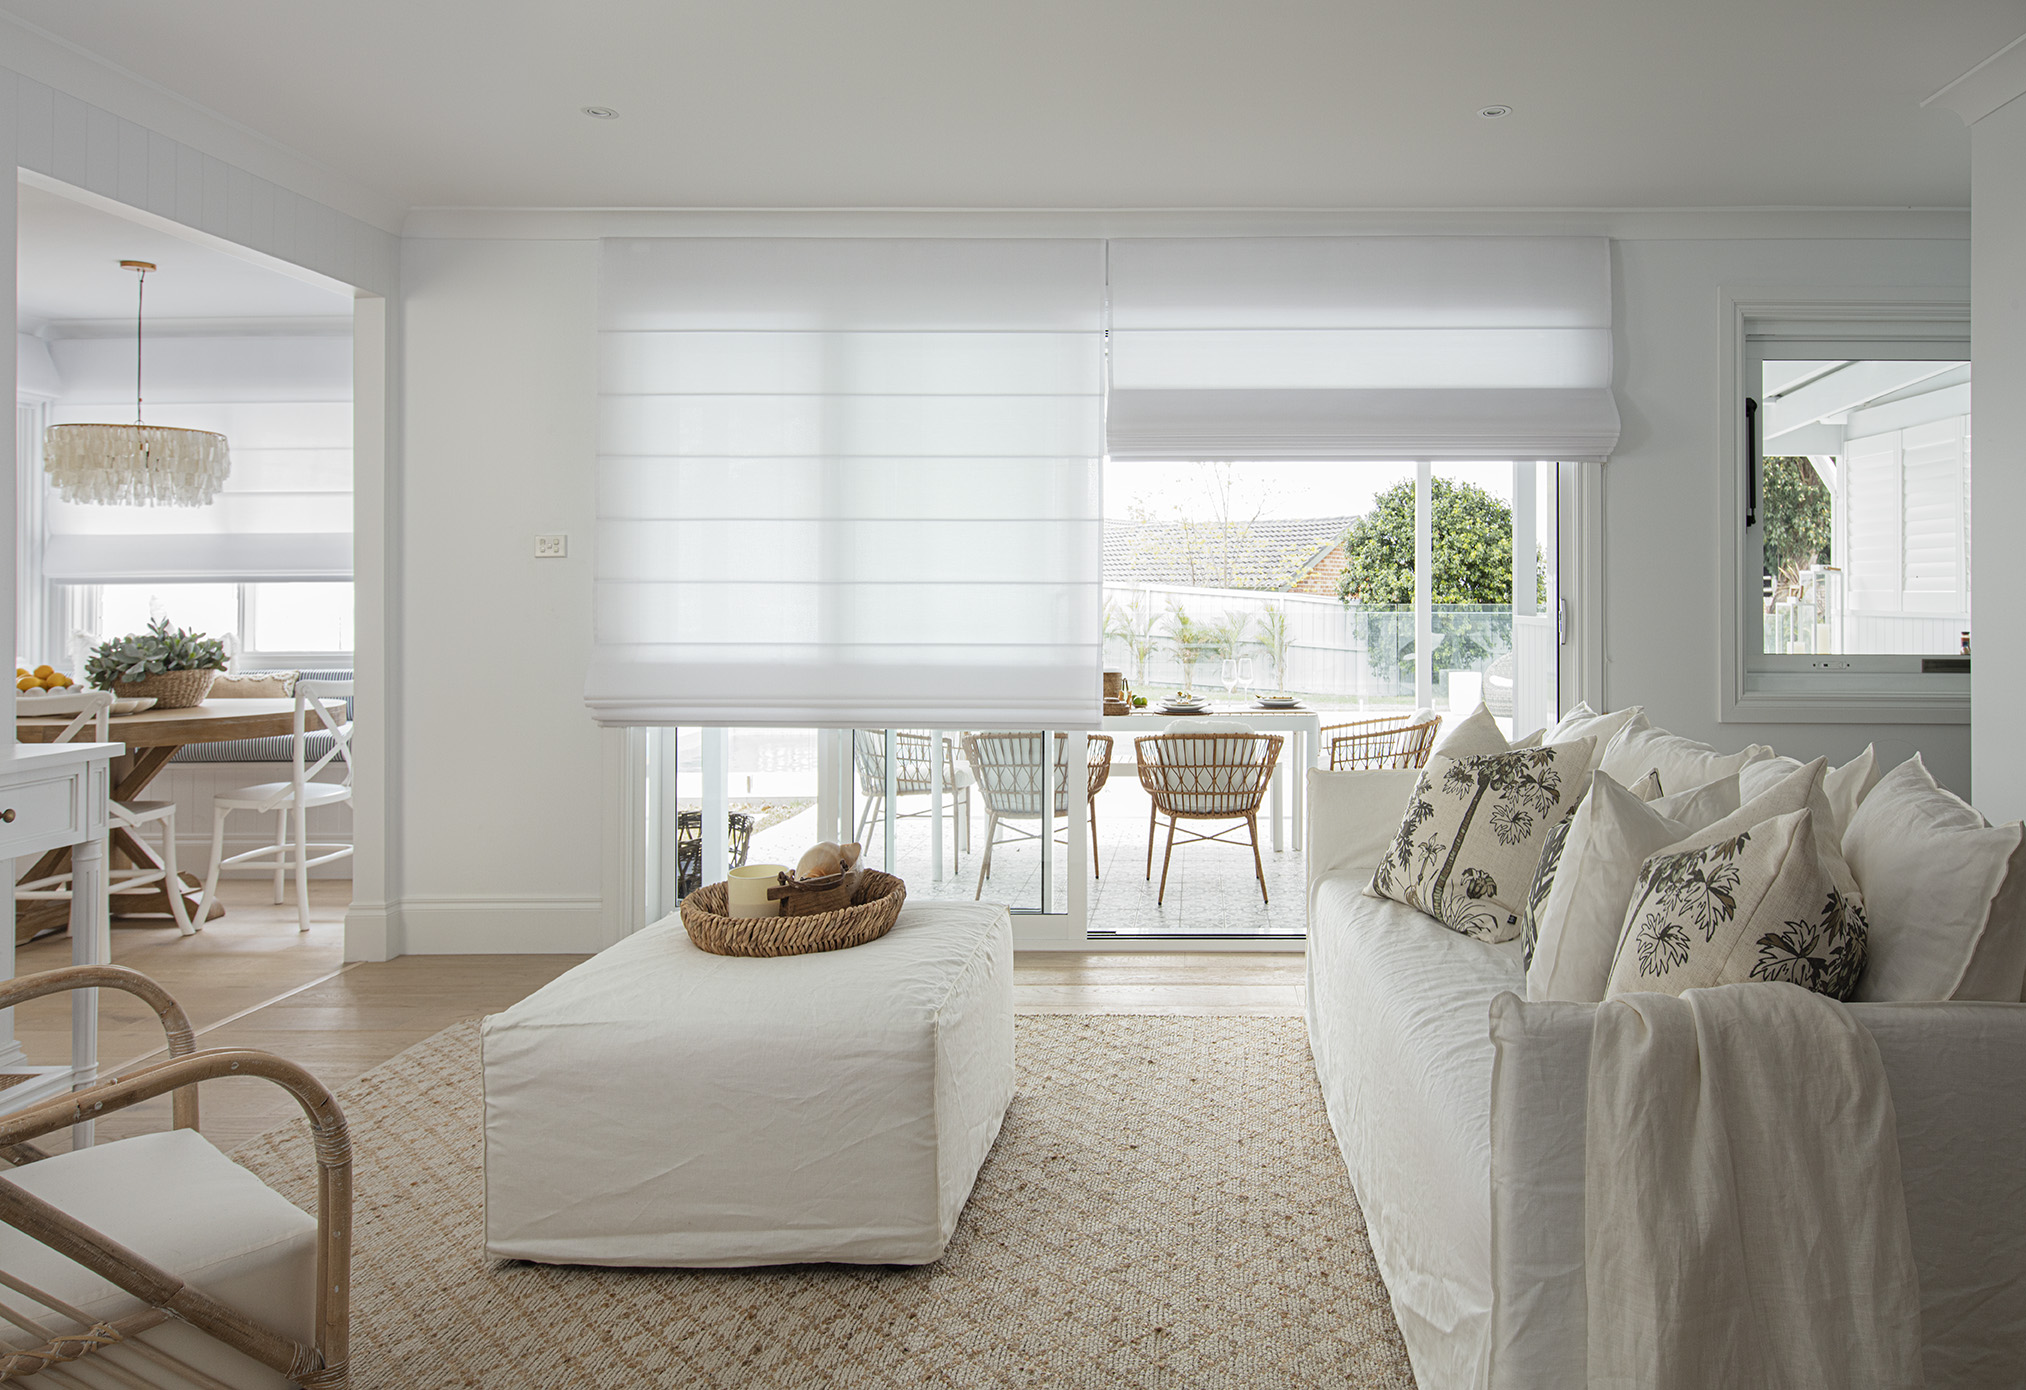 Translucent Roman Blinds in Living Area.jpg